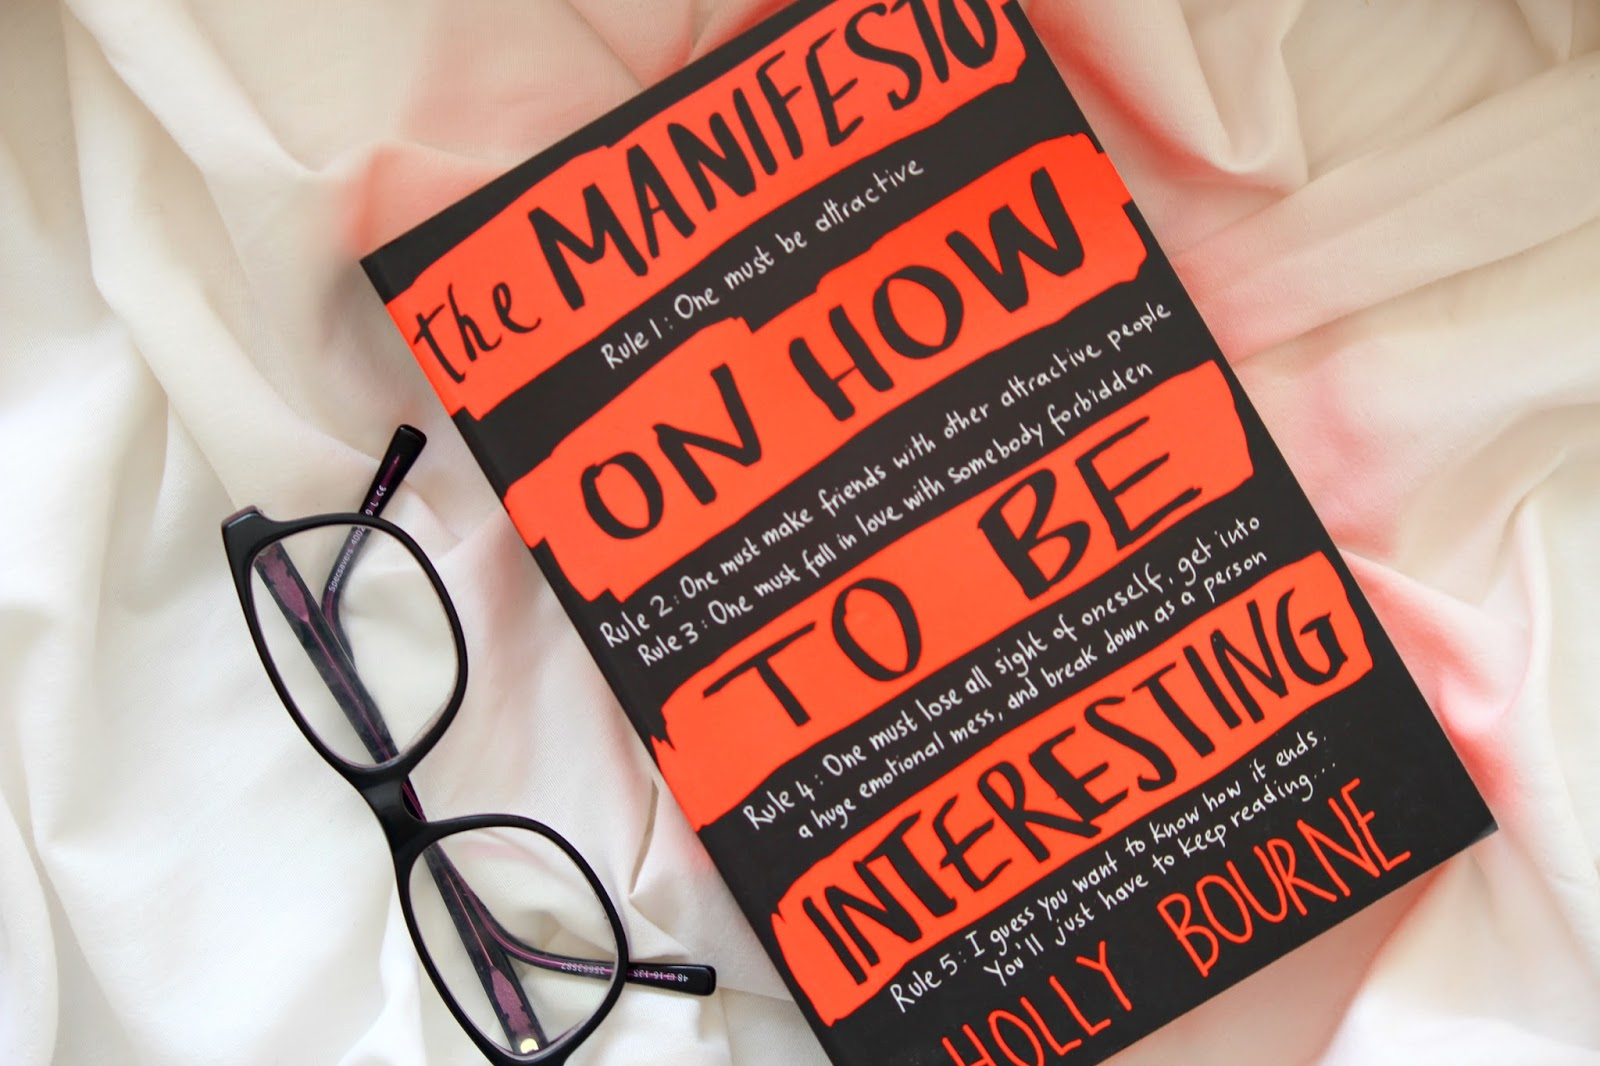 The Manifesto On How To Be Interesting review book blogger Holly Bourne YA young action fiction story blogger UK